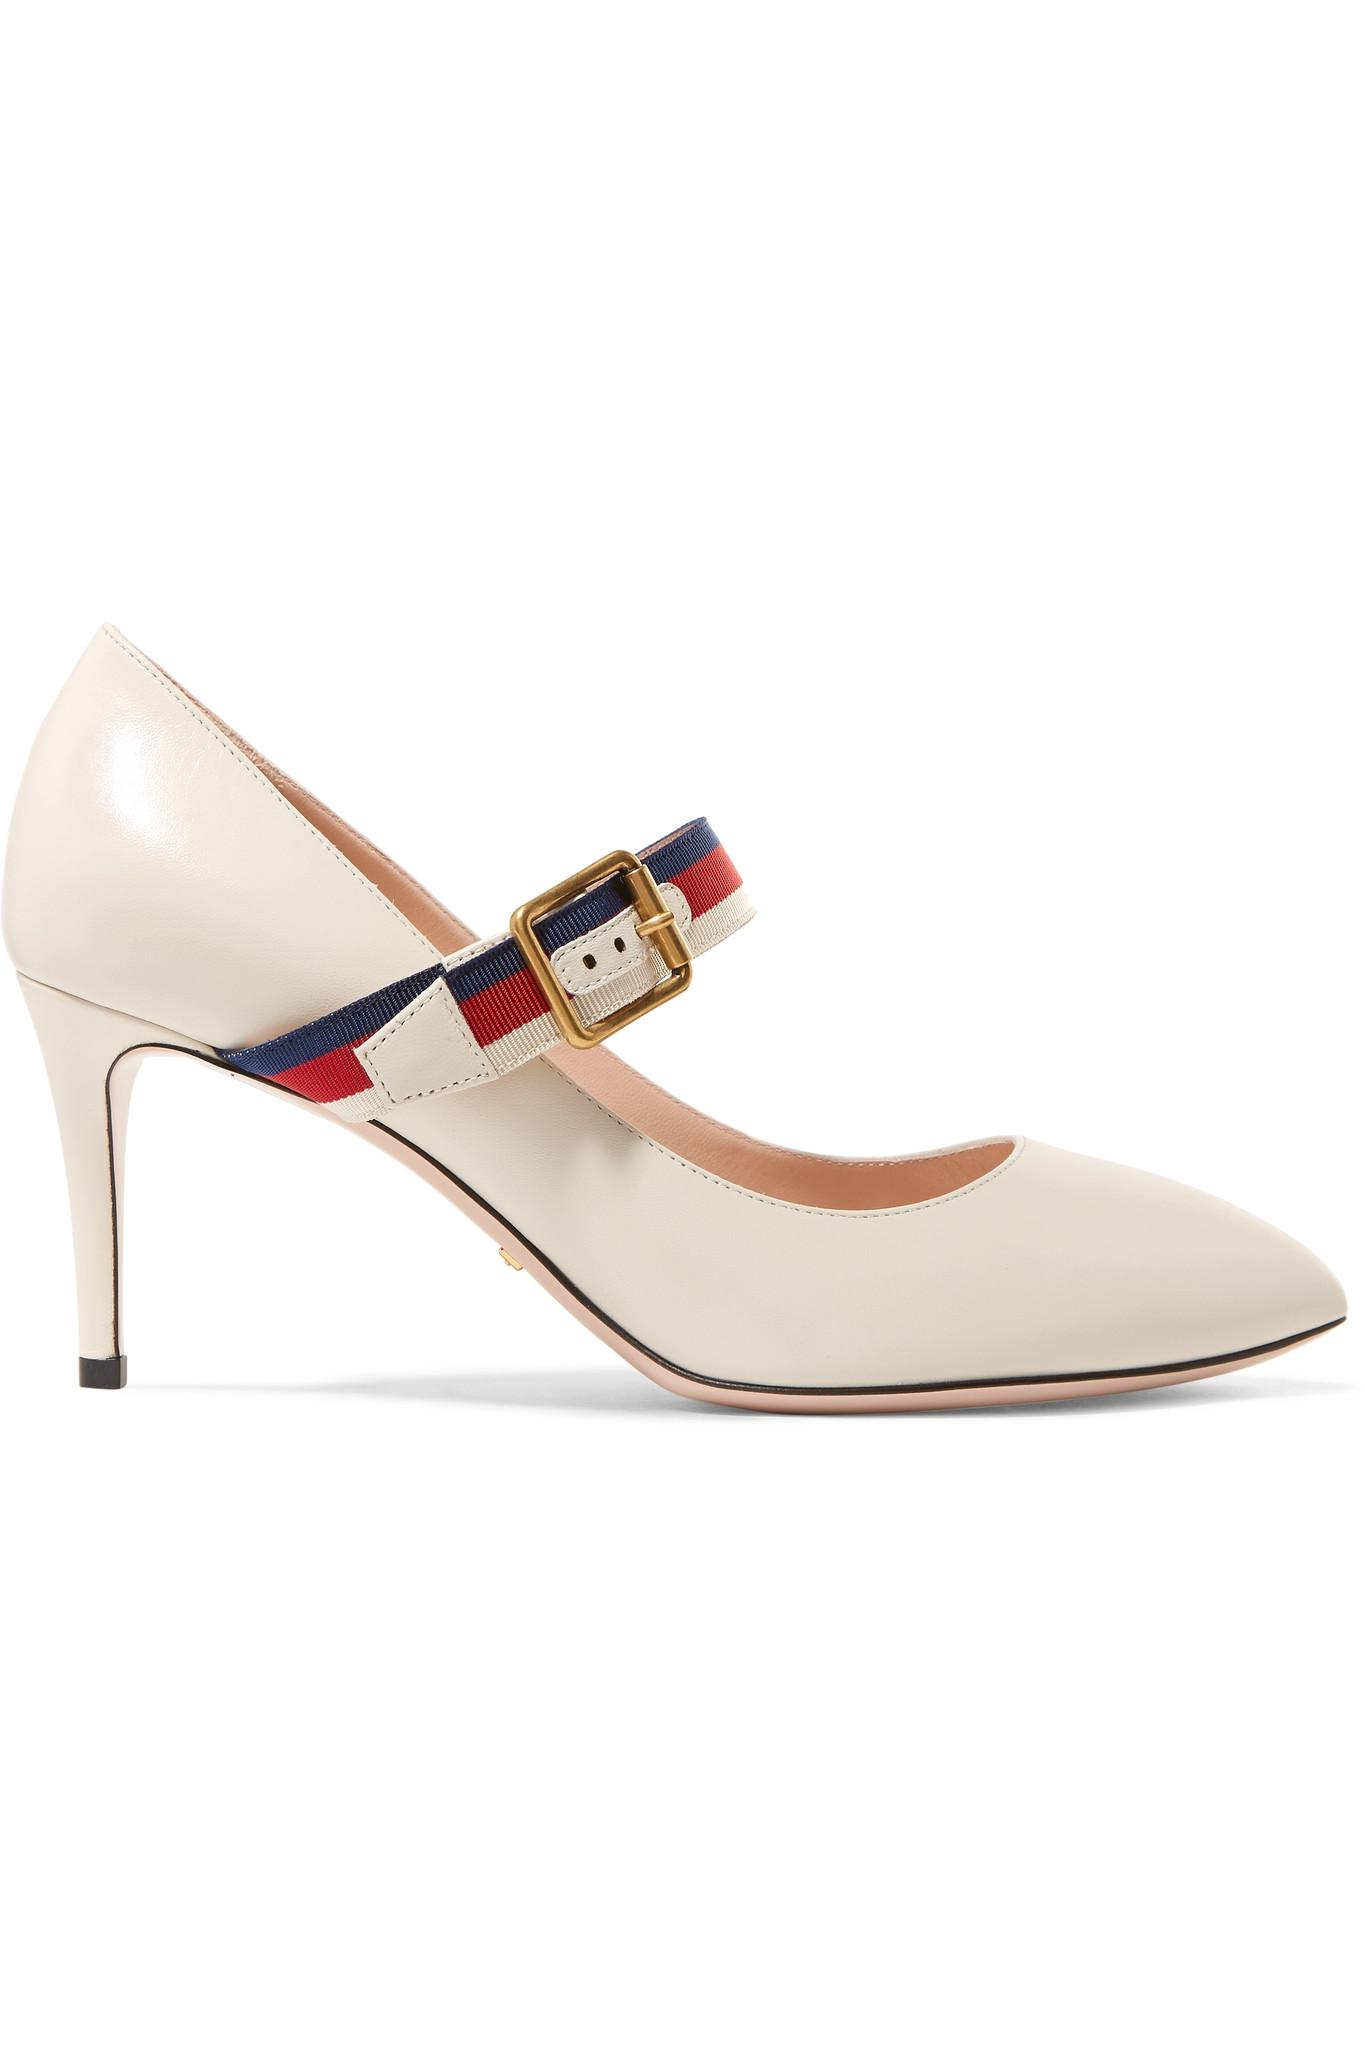 2f2b63afc11 Gucci. Women s White Sylvie Grosgrain-trimmed Leather Court Shoes